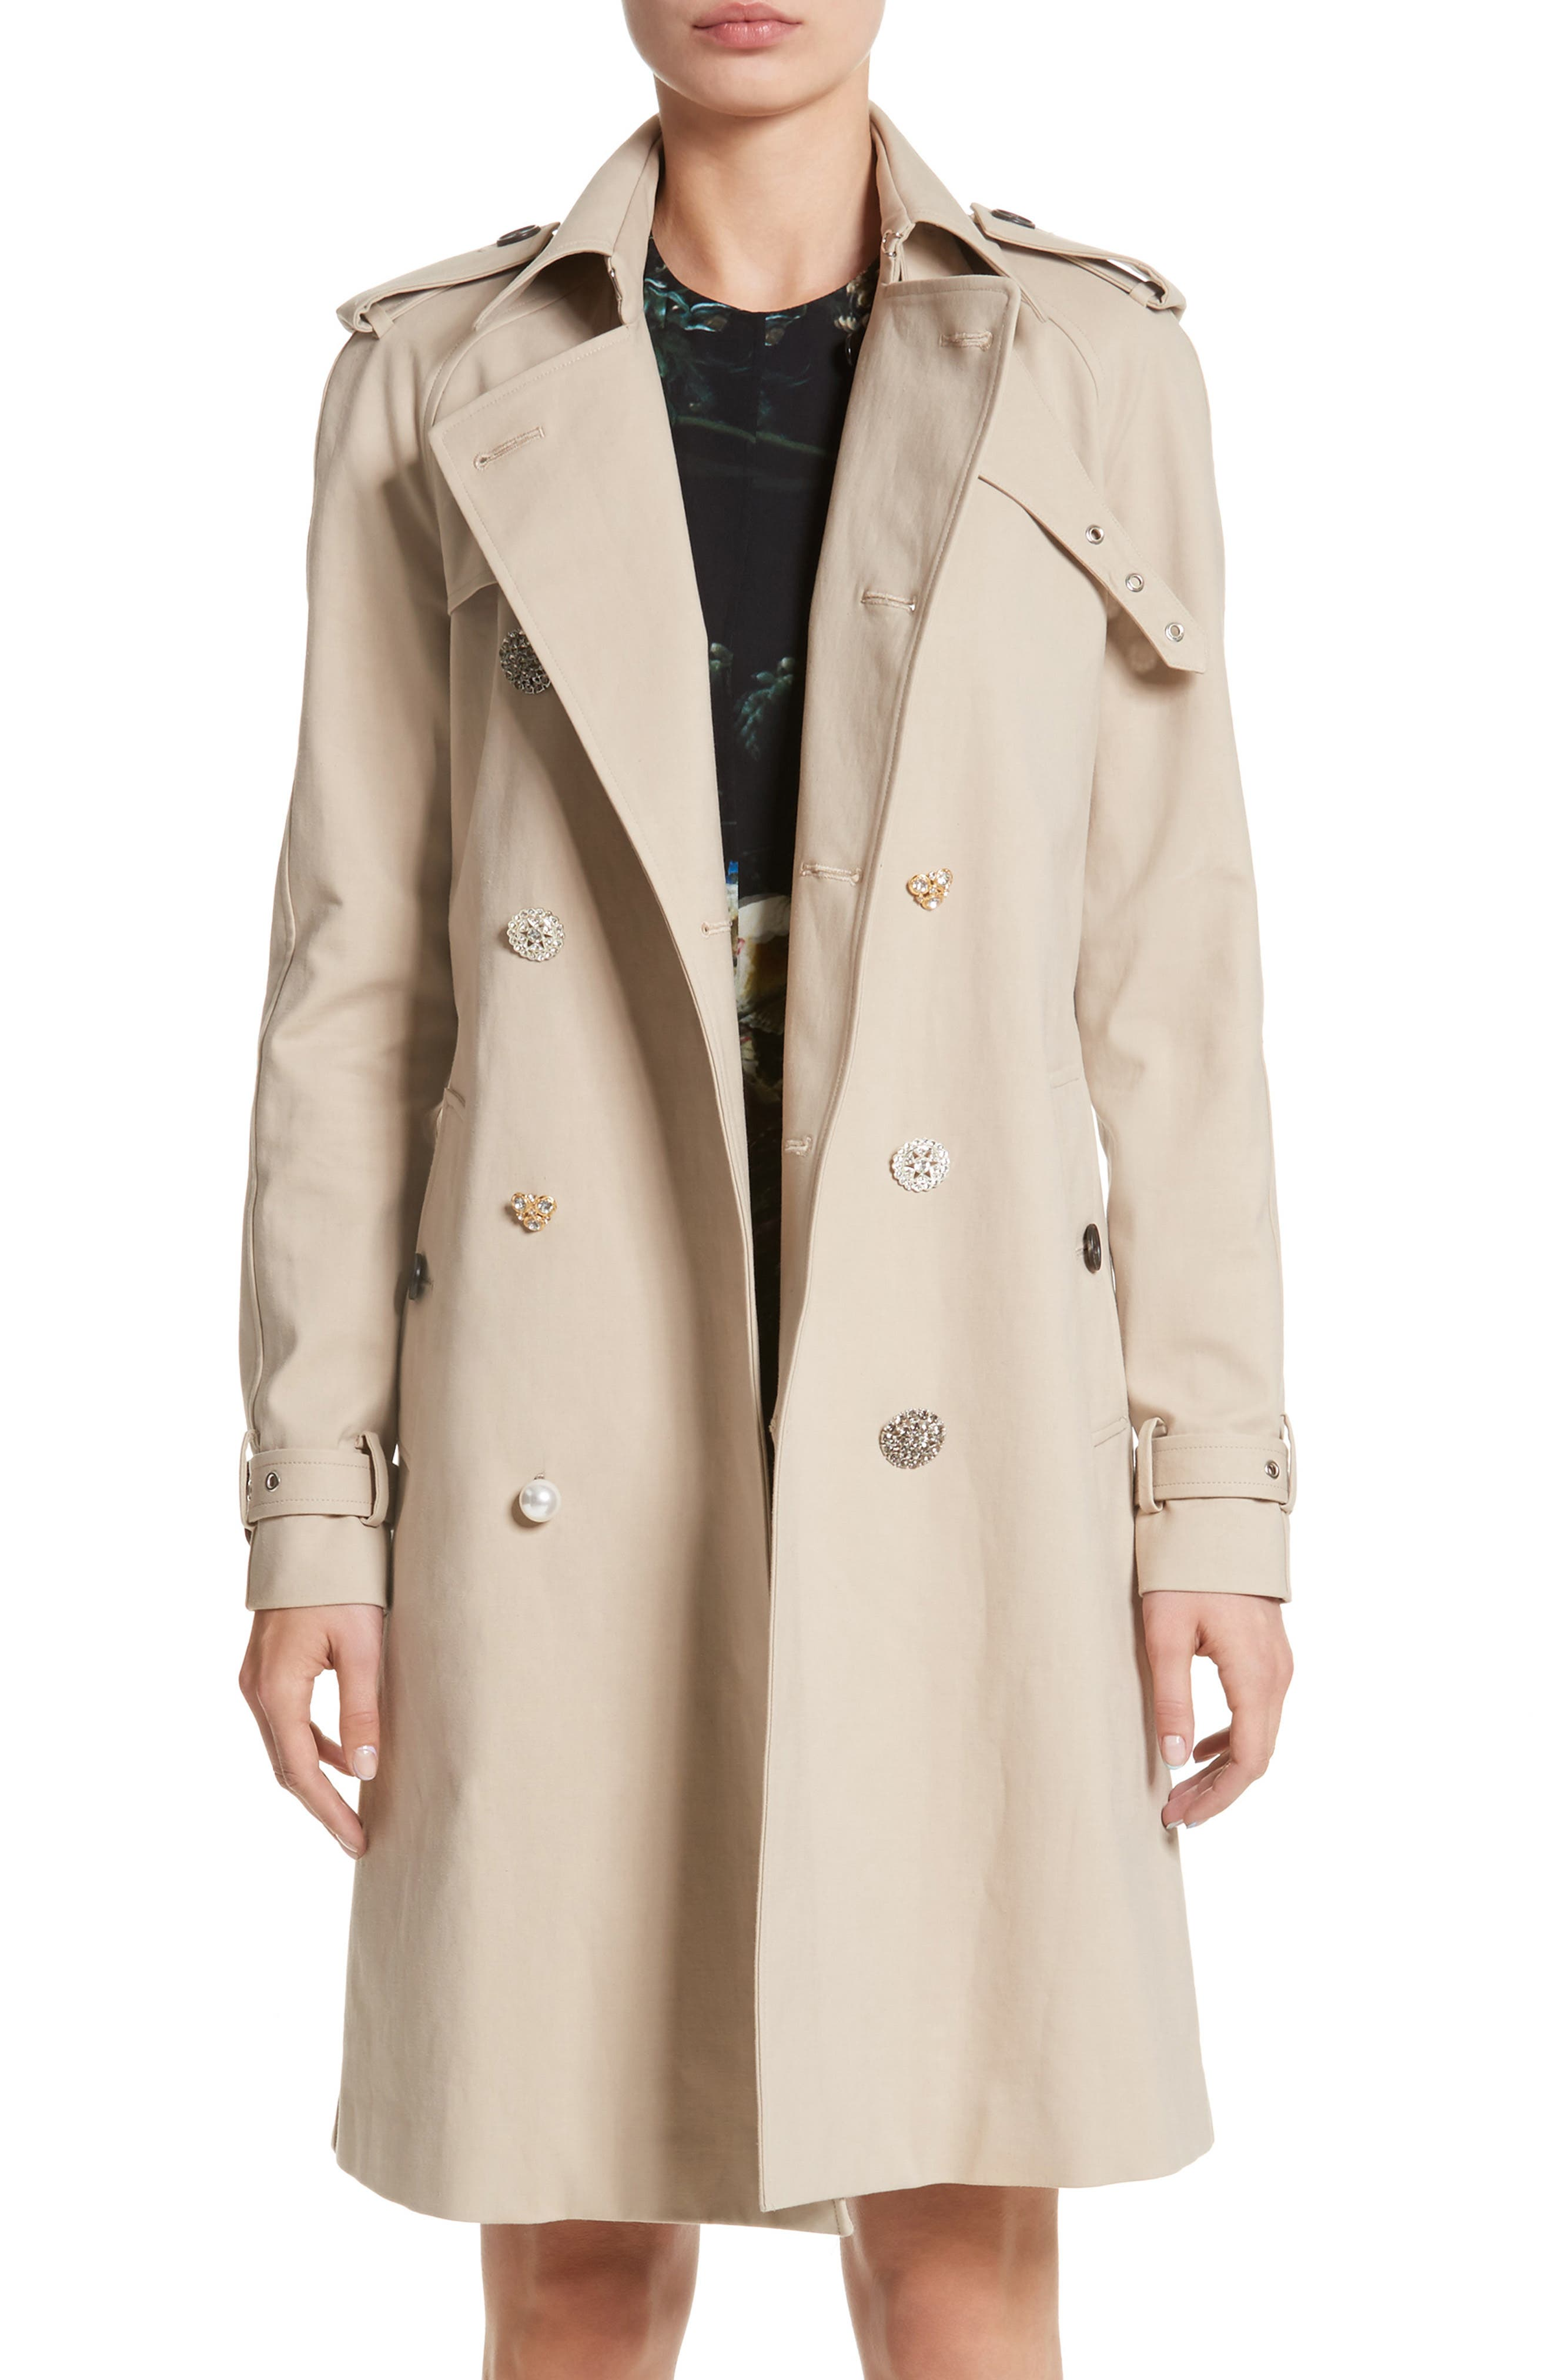 Embellished Button Trench Coat,                             Main thumbnail 1, color,                             250